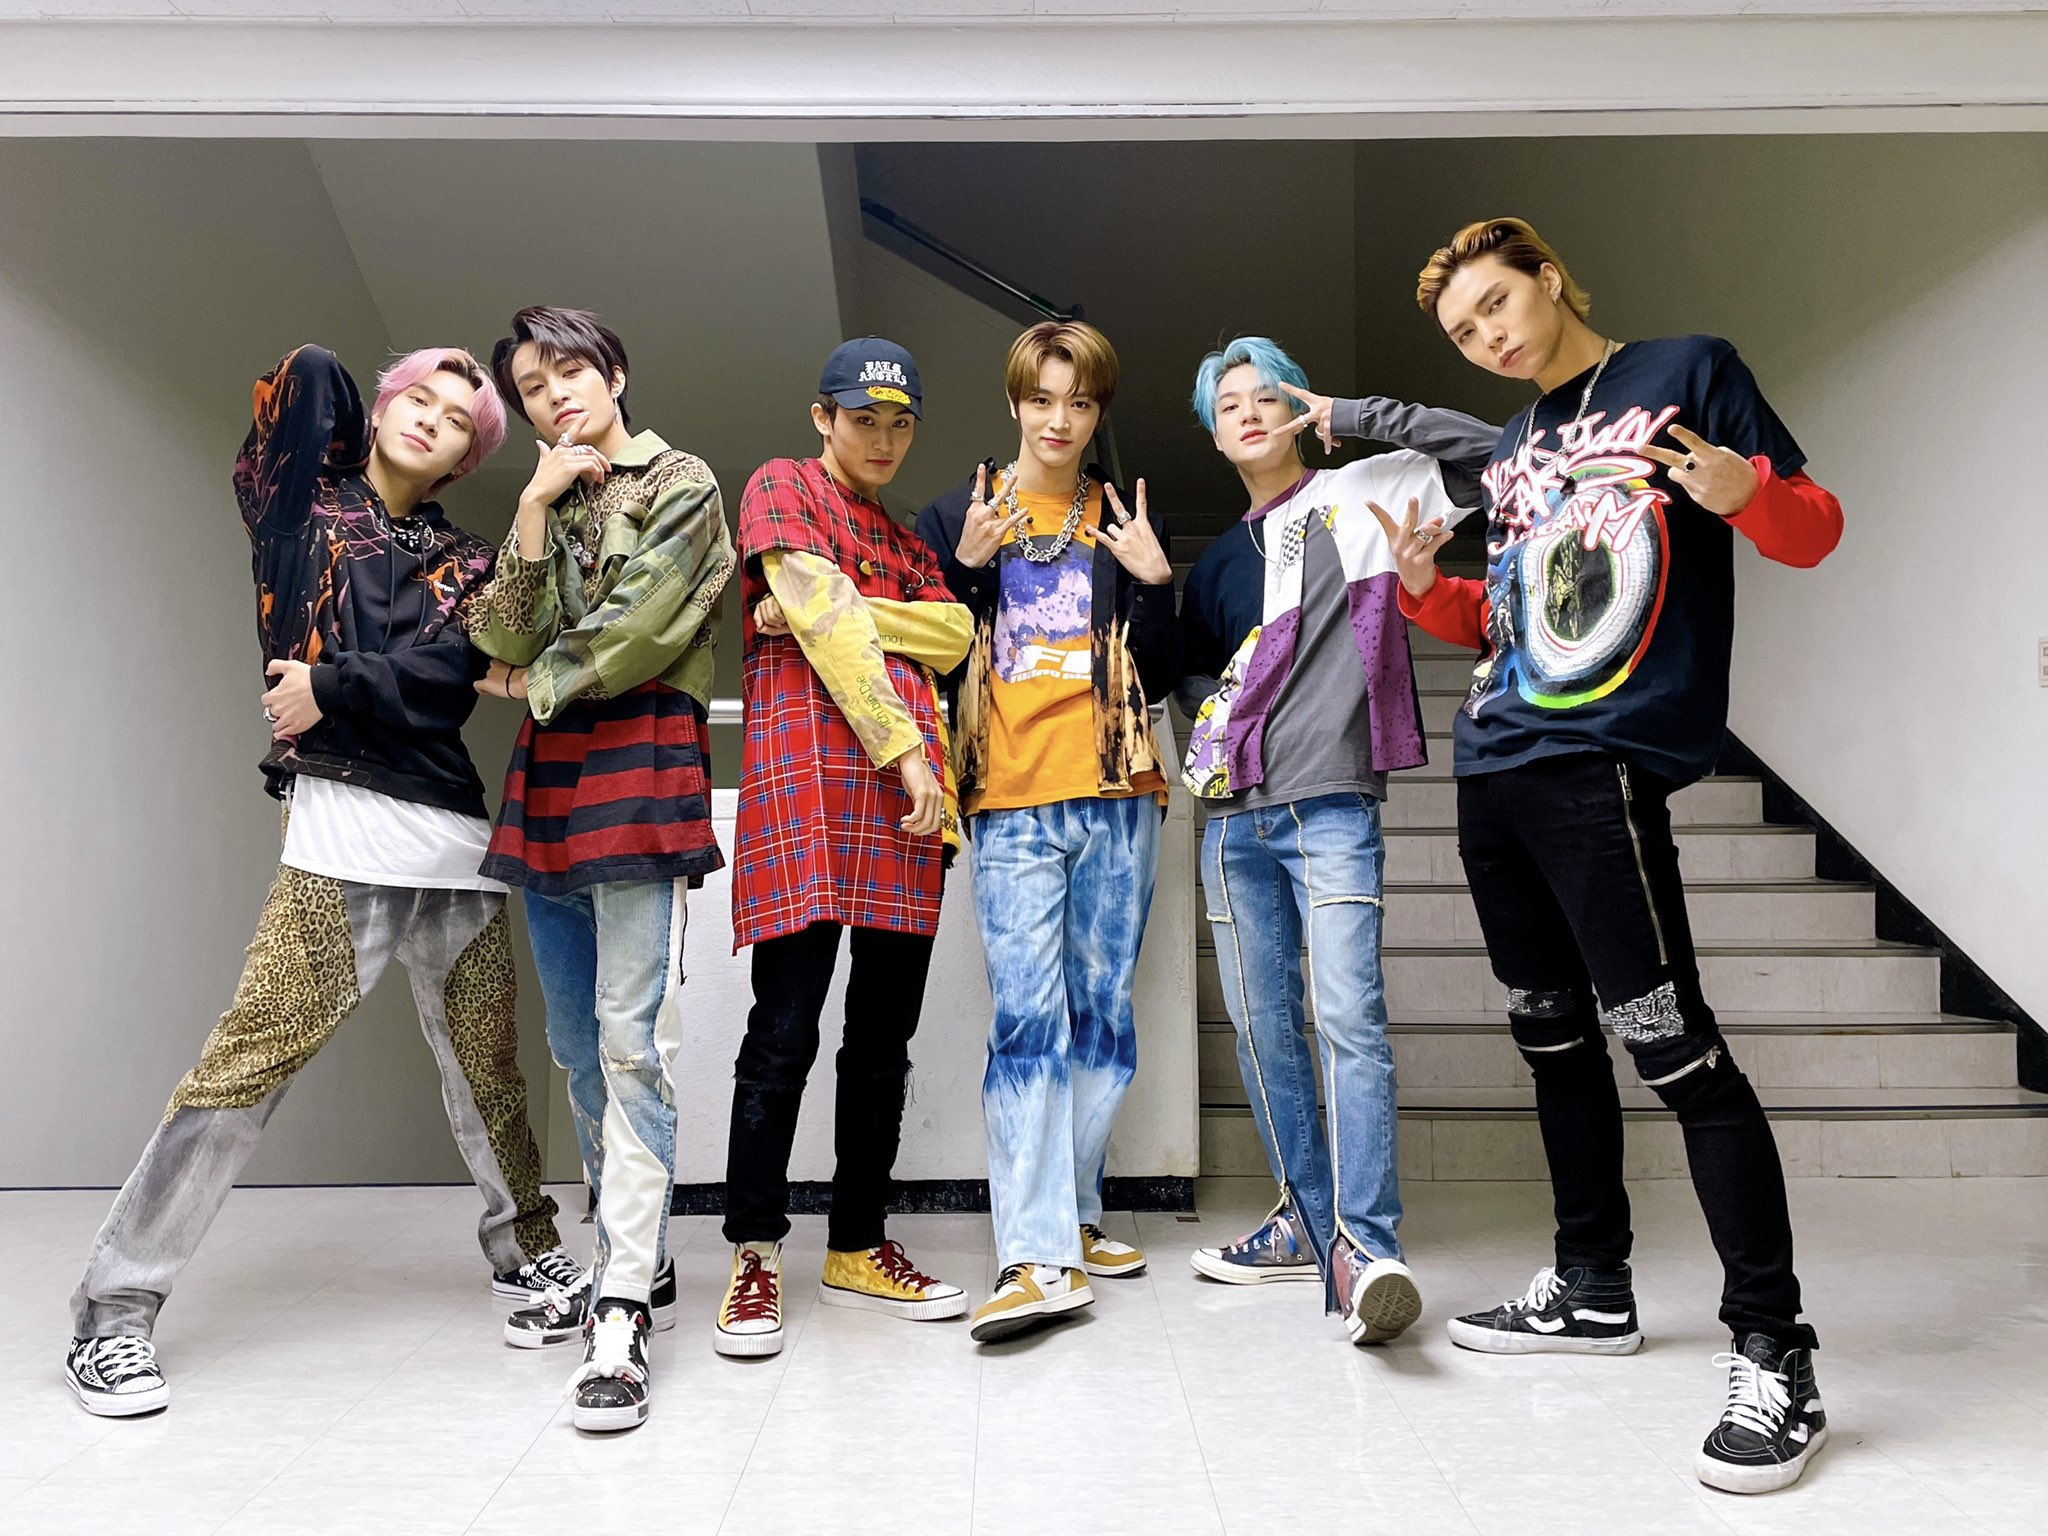 nct 2020 @NCTsmtown